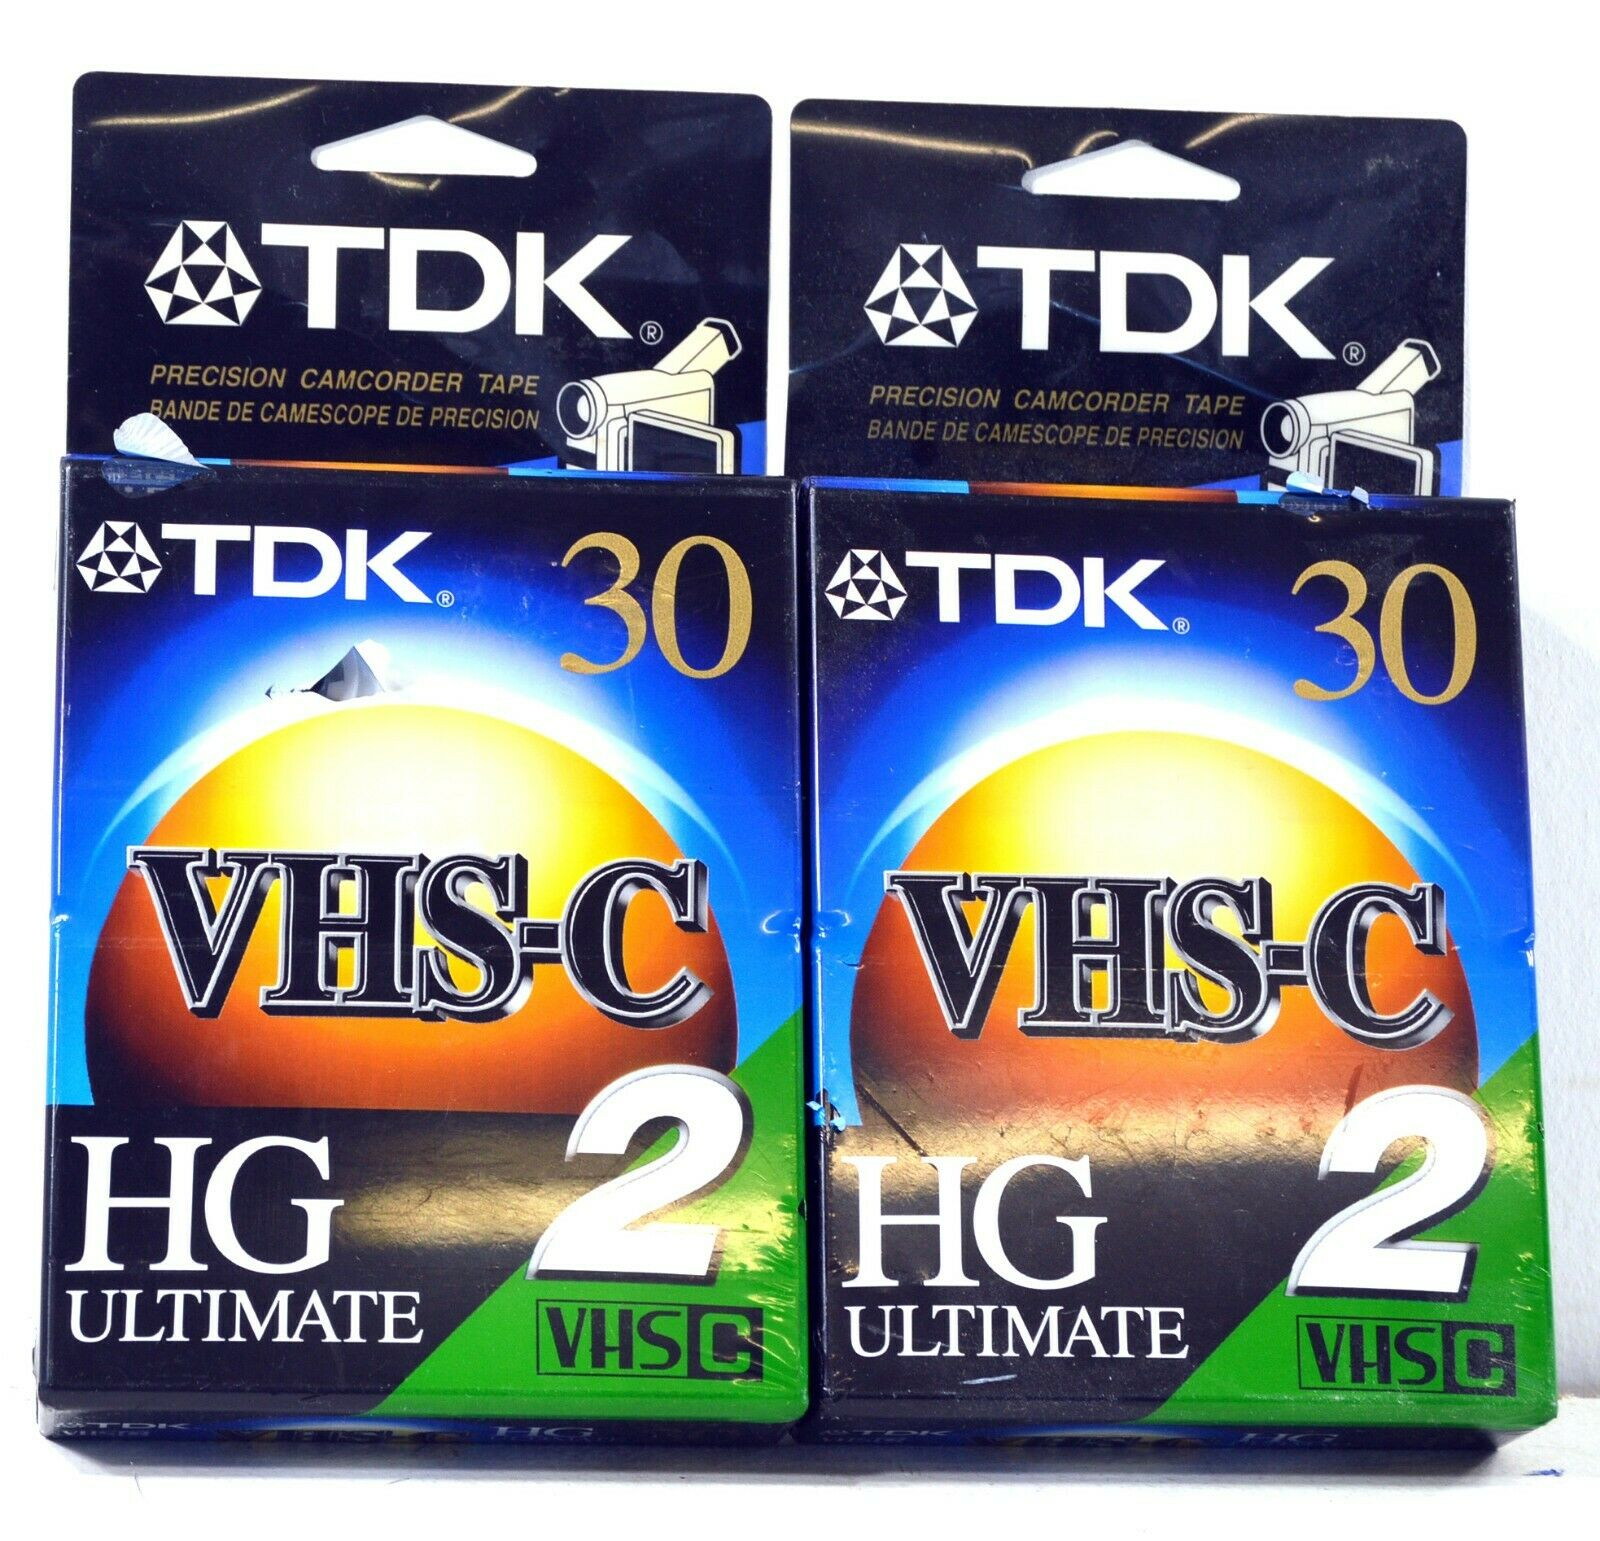 New TDK VHS-C 30 HG Ultimate Camcorder Blank Video Cassette Tapes - Lot of 4